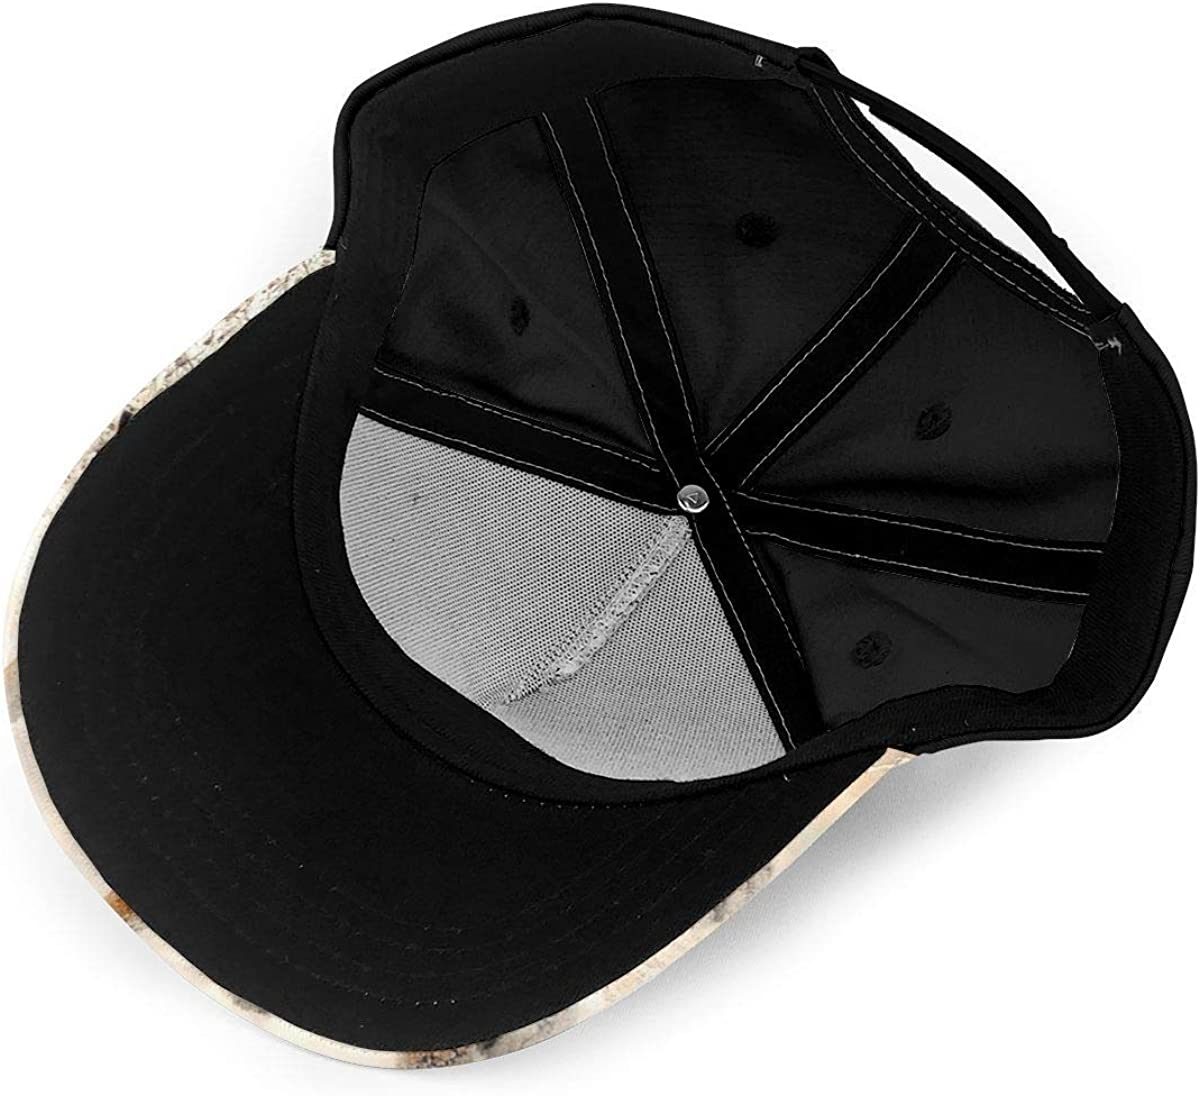 Tiger Family Walking Winter Snow Lightweight Unisex Baseball Caps Adjustable Breathable Sun Hat for Sport Outdoor